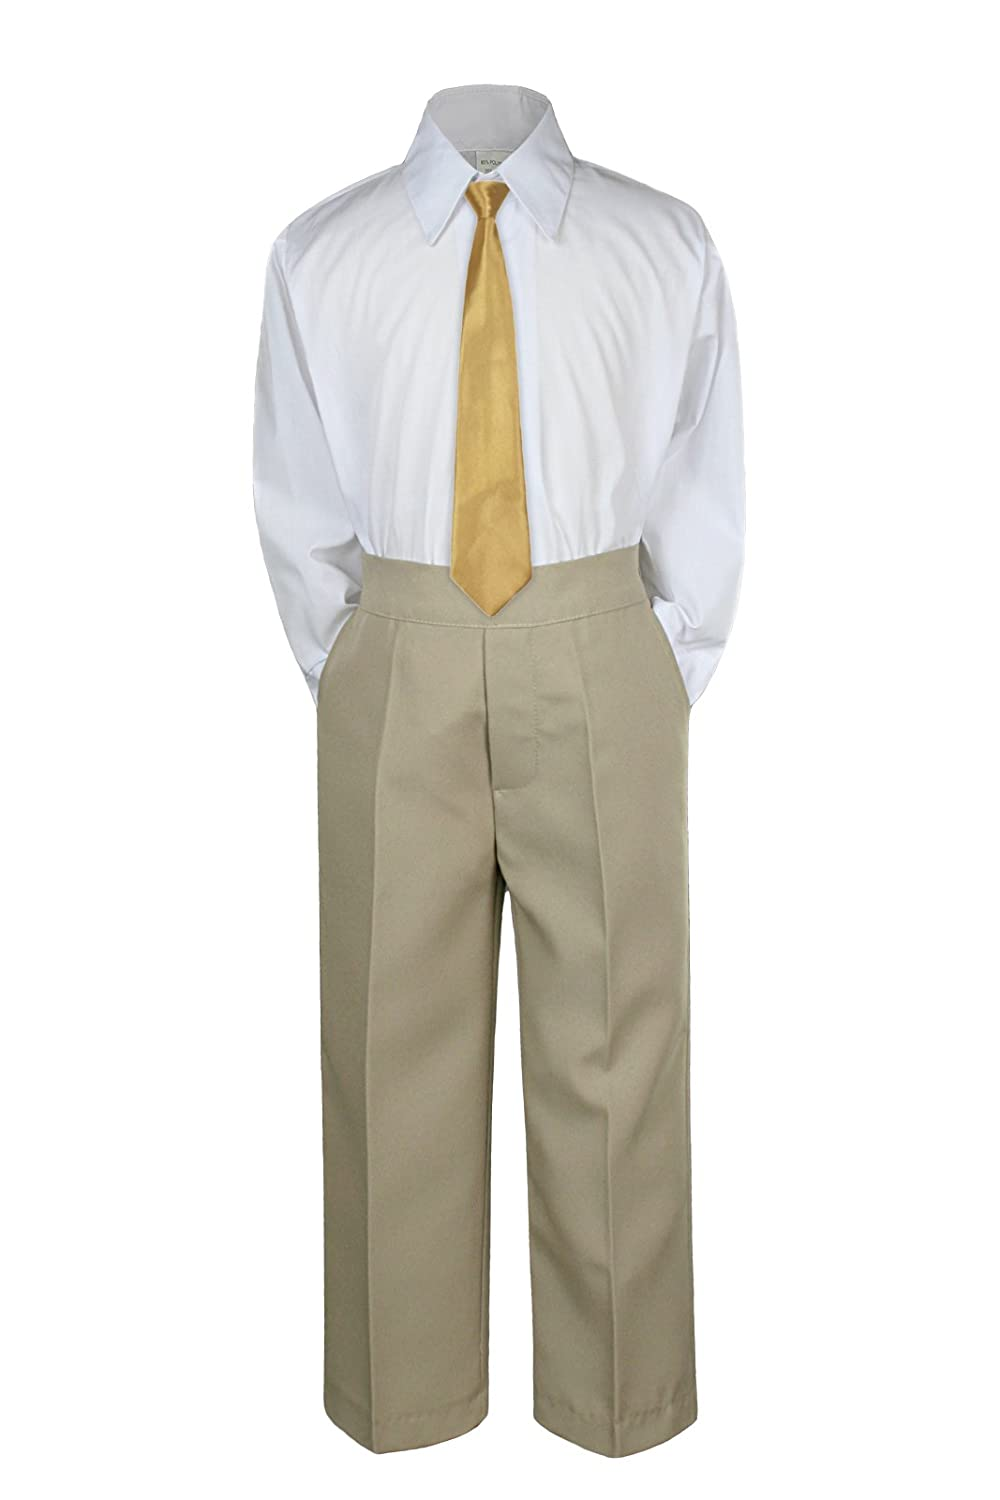 3pc Formal Baby Teen Boys Gold Necktie Khaki Pants Sets Suits S-14 (2T)